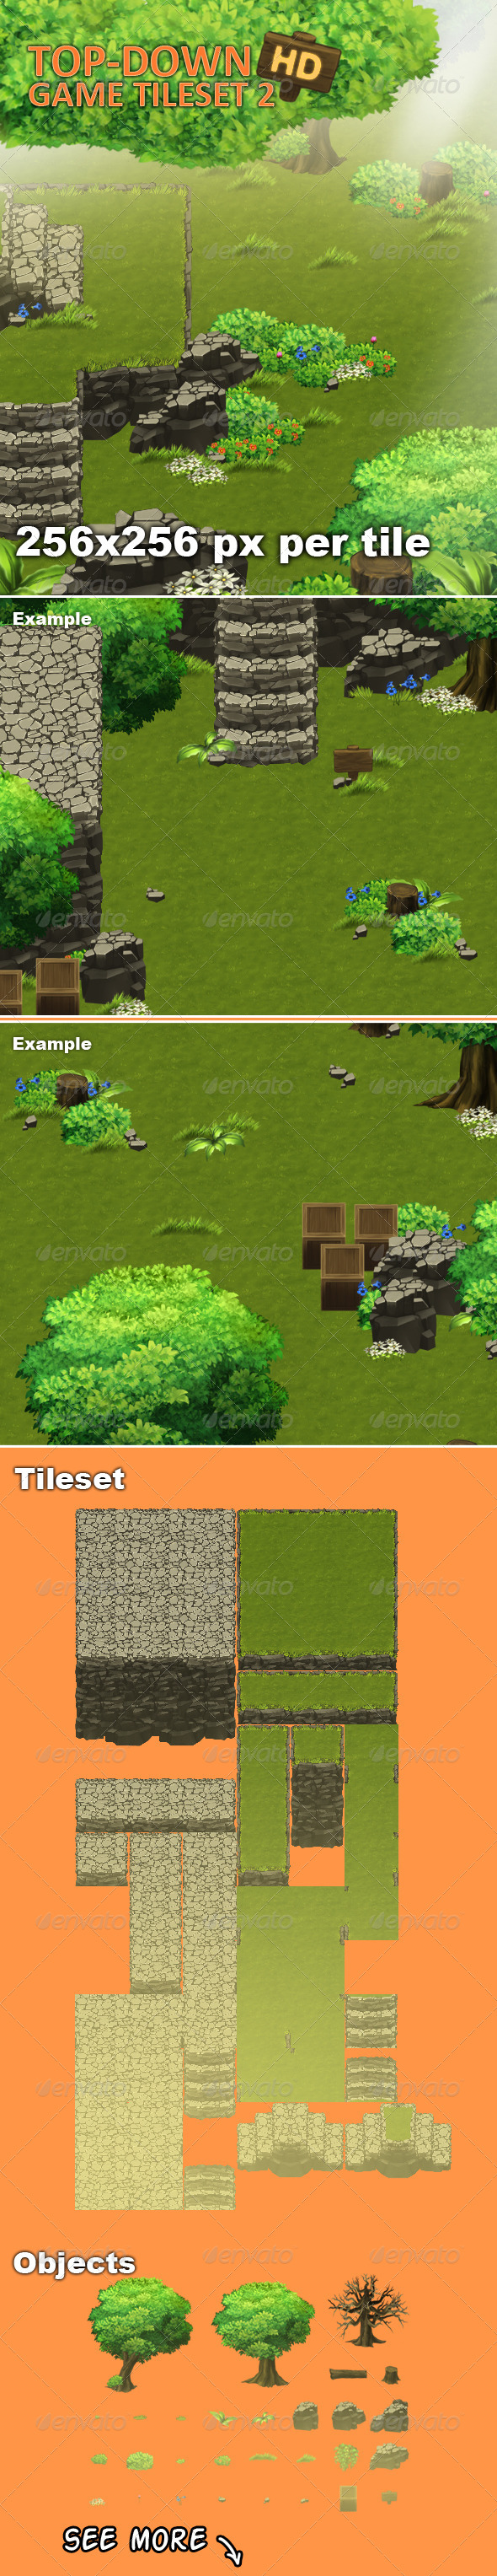 GraphicRiver Top-Down Game Tileset 2 HD 7858373